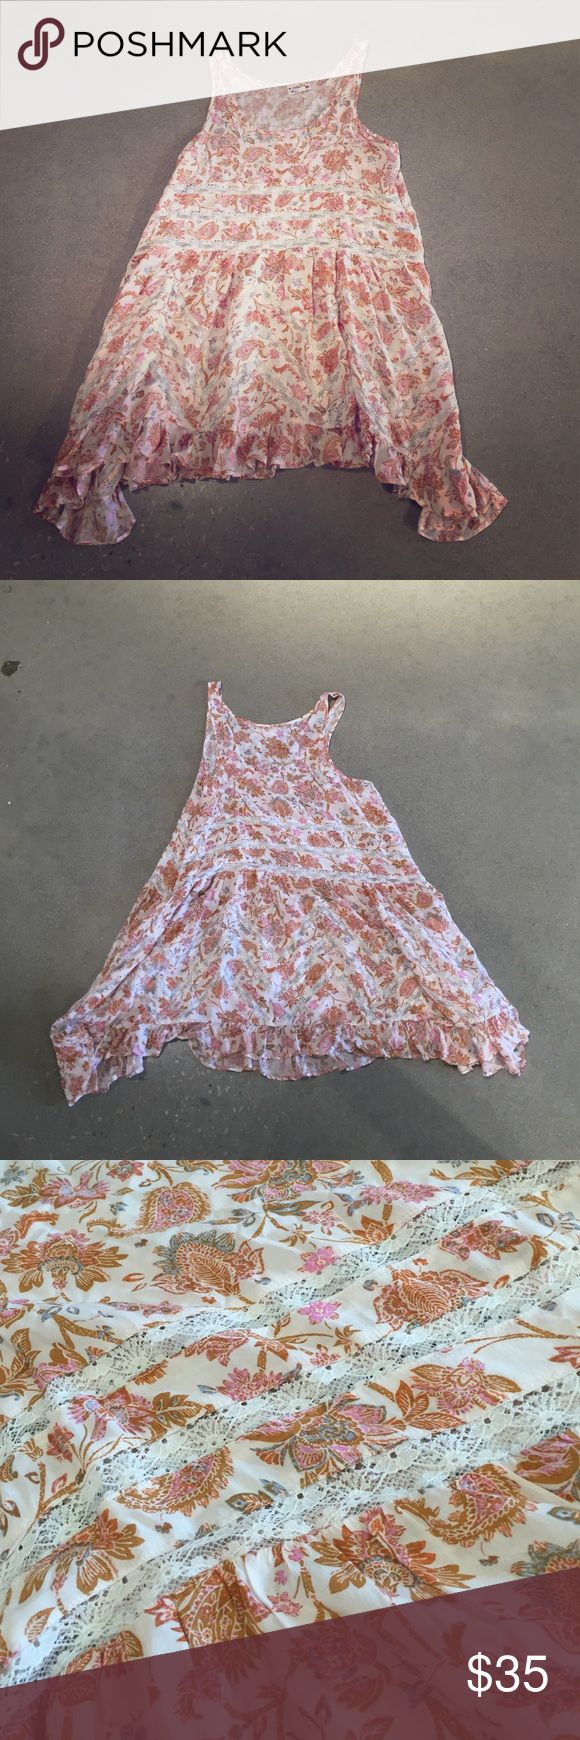 Free people dress/ tunic Free people dress/ flowey tunic. So cute over ripped jeans with a beautiful flower pattern and lace cut outs. If you're short enough this can totally be a cute belted summer dress. Perfect for bbqs or back to school. Free People Dresses Mini